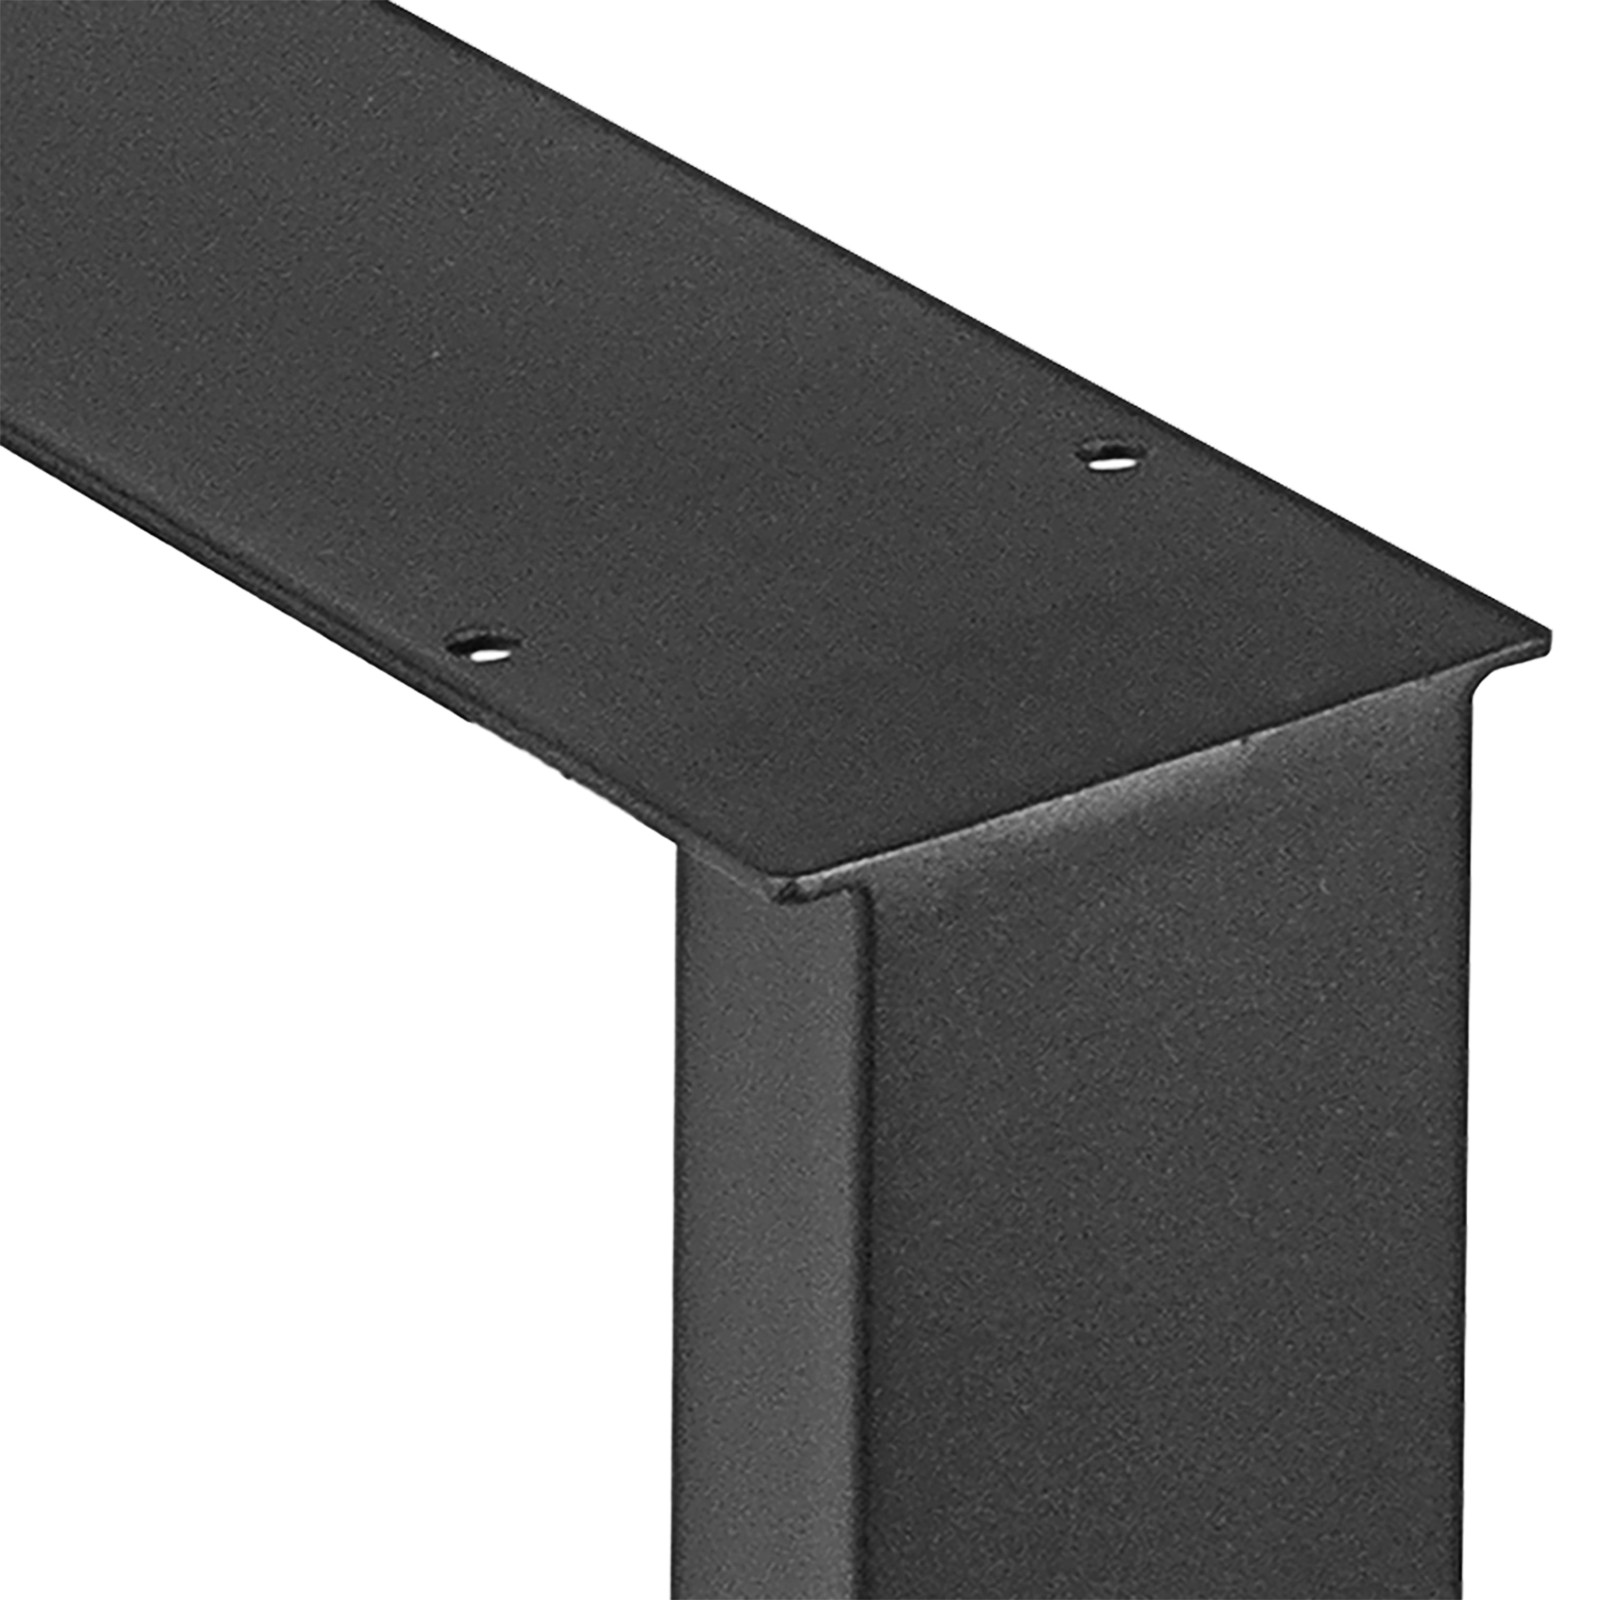 2X-Table-Legs-Black-Dining-Table-Leg-Heavy-Duty-Computer-Desk-Legs-Rectangle thumbnail 55